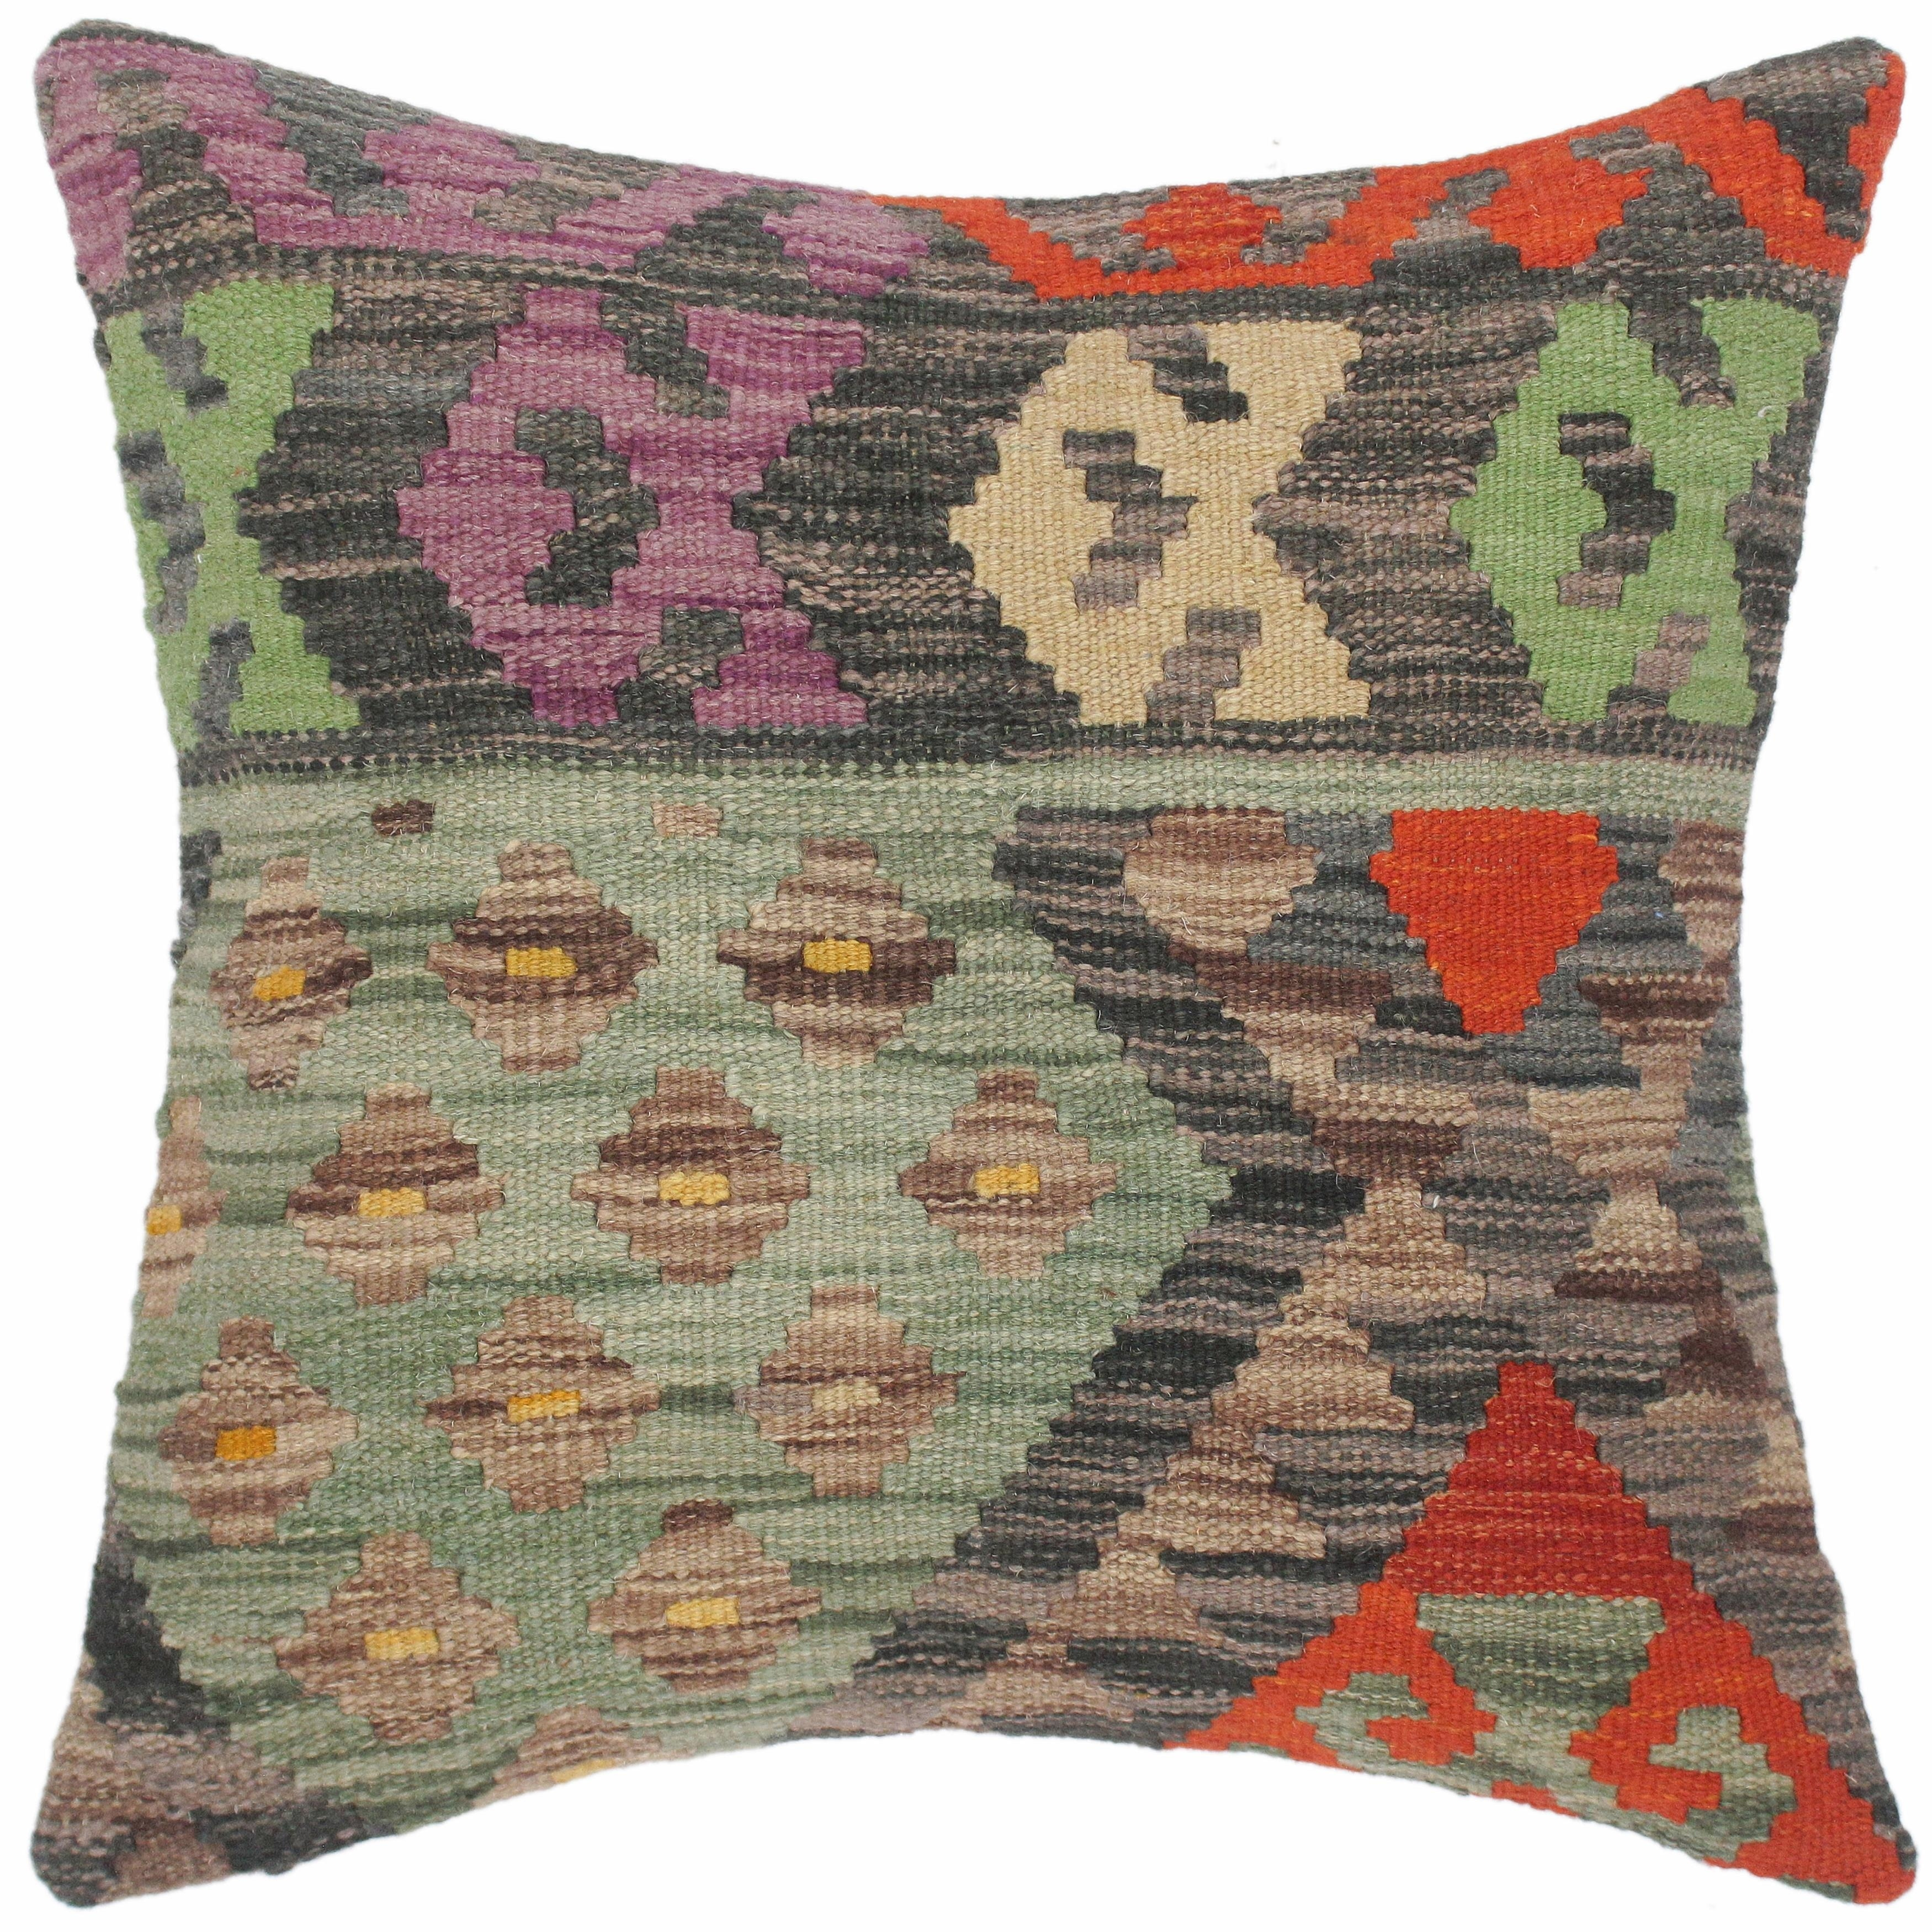 Home  faded pillows kilim pillow distressed pillow boho turkish pillow Cushion Covers indoor pillow 40*0296 18x18